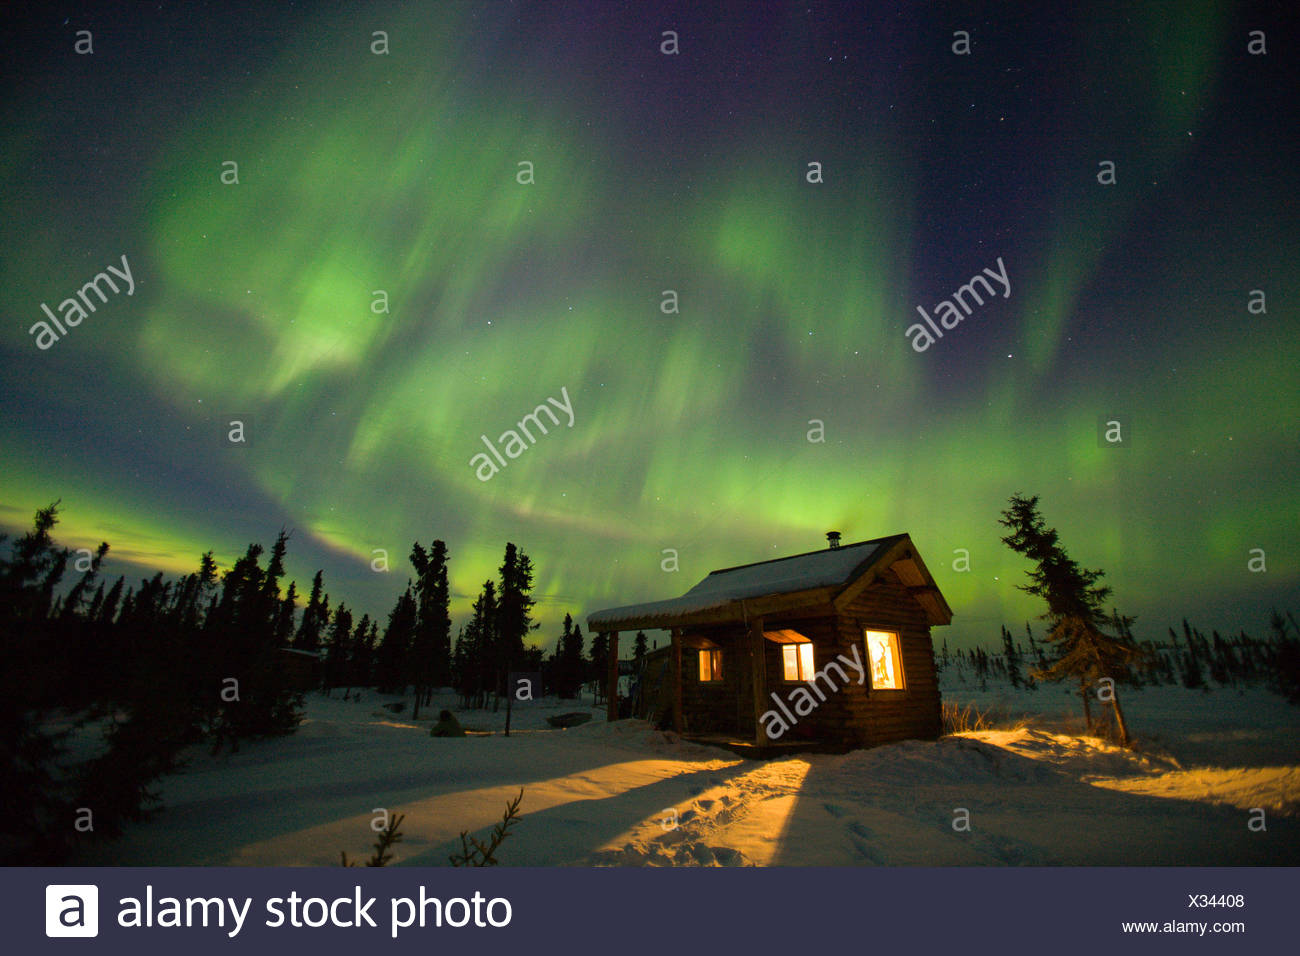 Curtains of green and purple aurora borealis (northern lights) dance over a warm cabin in the hills near Fairbanks, Alaska - Stock Image